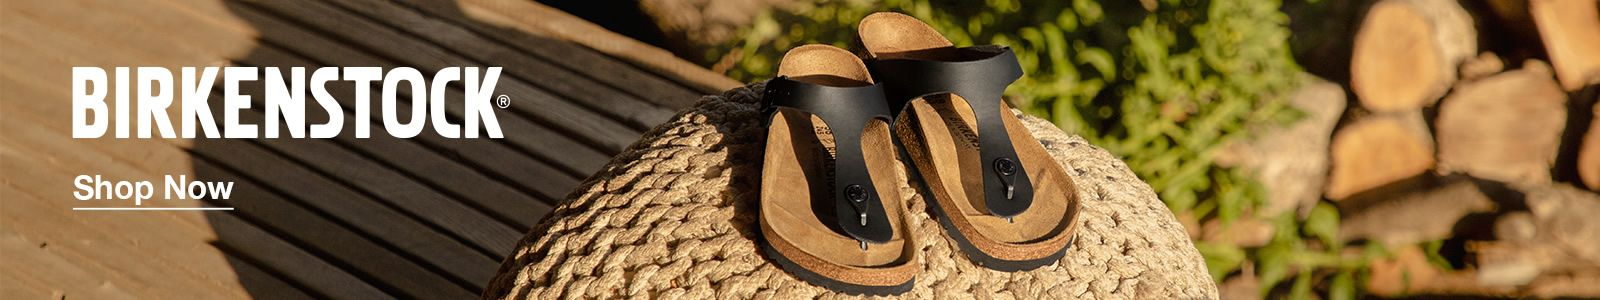 Birkenstock, Shop Now